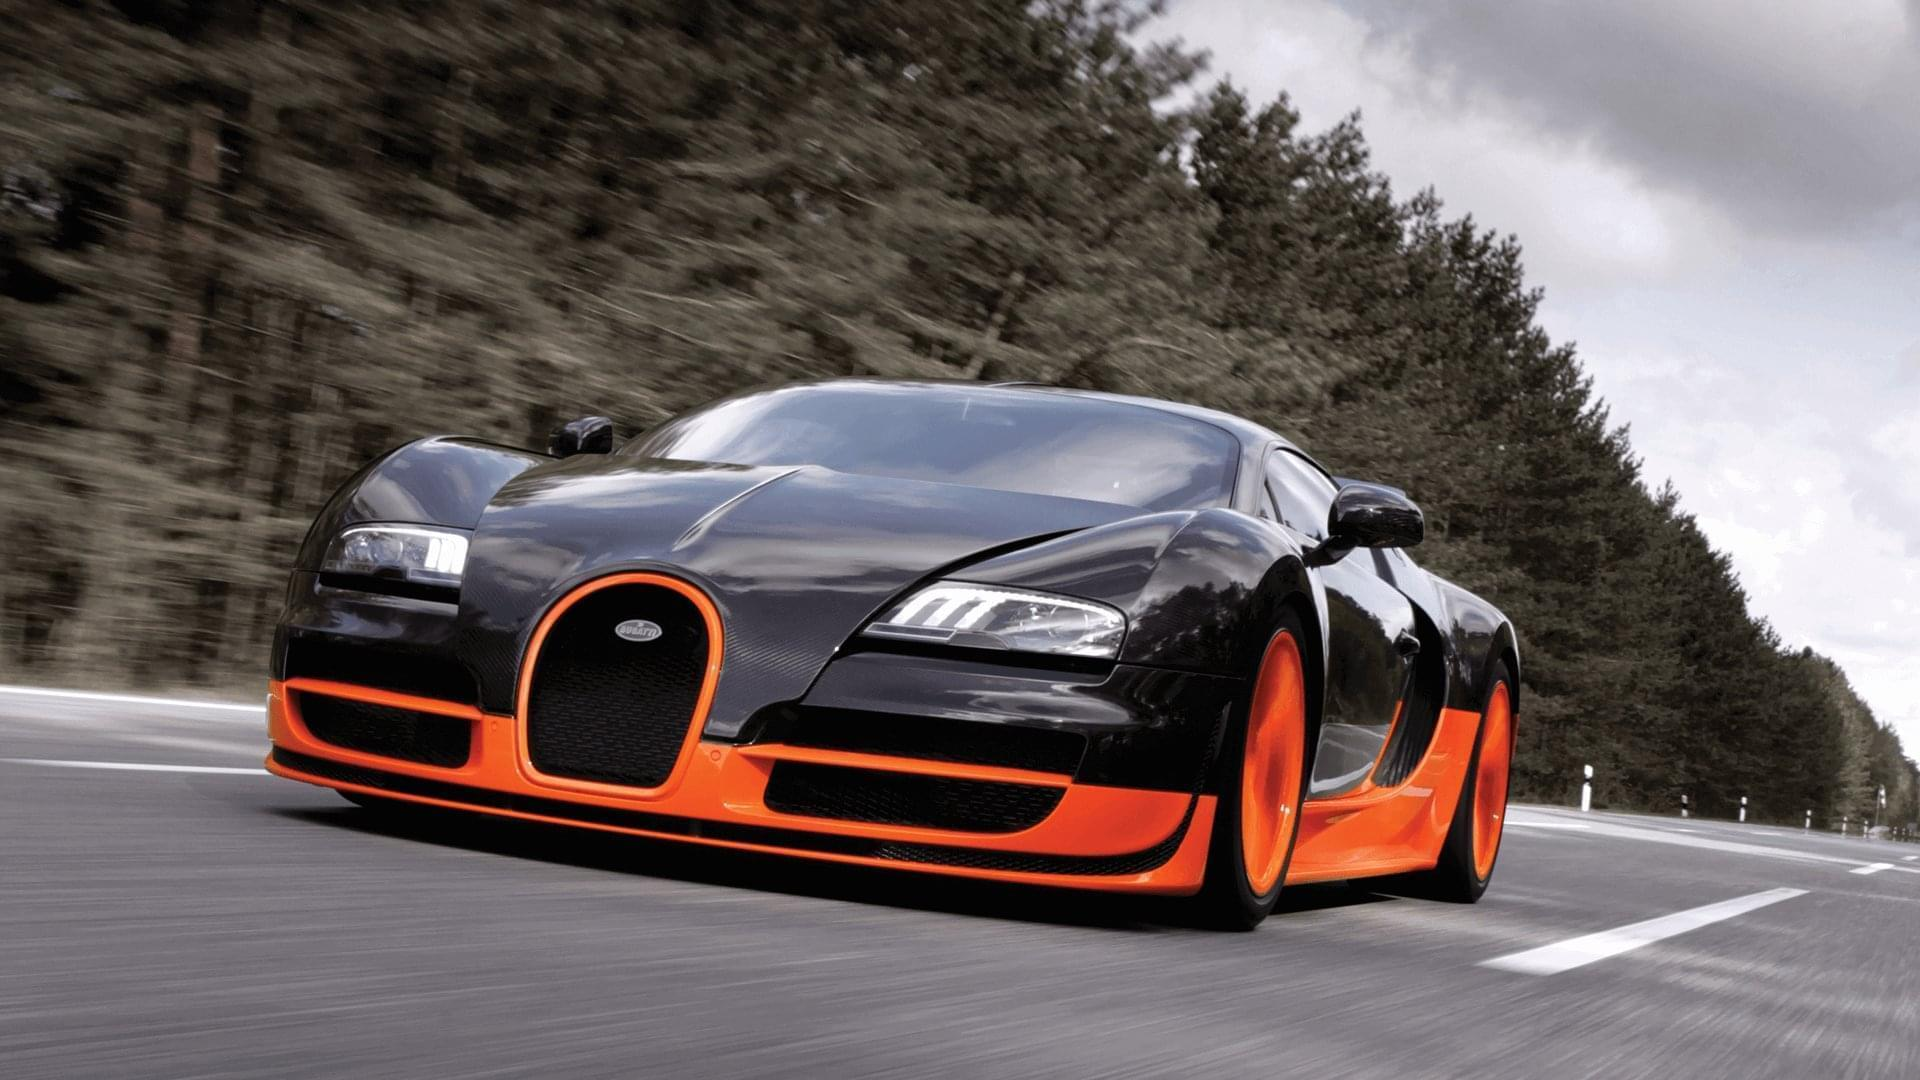 One of the most popular cars from Bugatti and also one of the most expensive